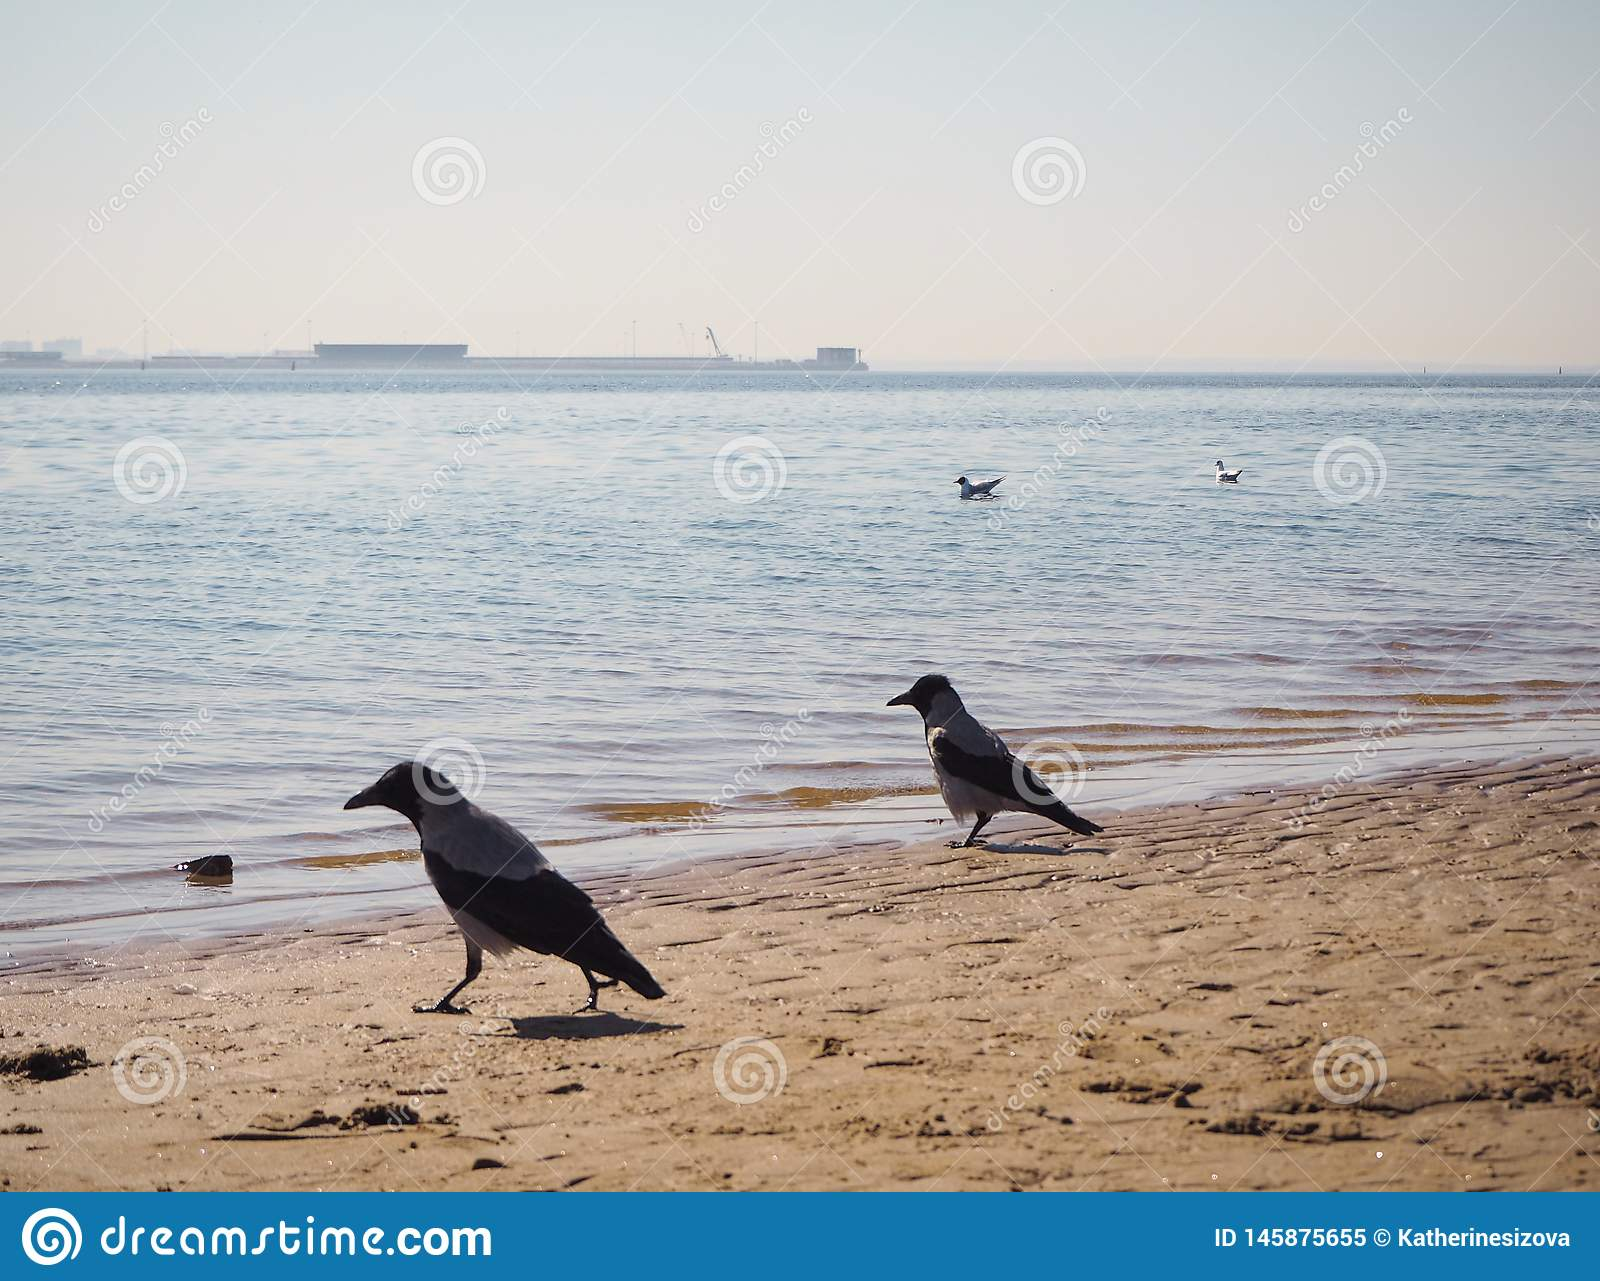 Two crows are walking on the beach